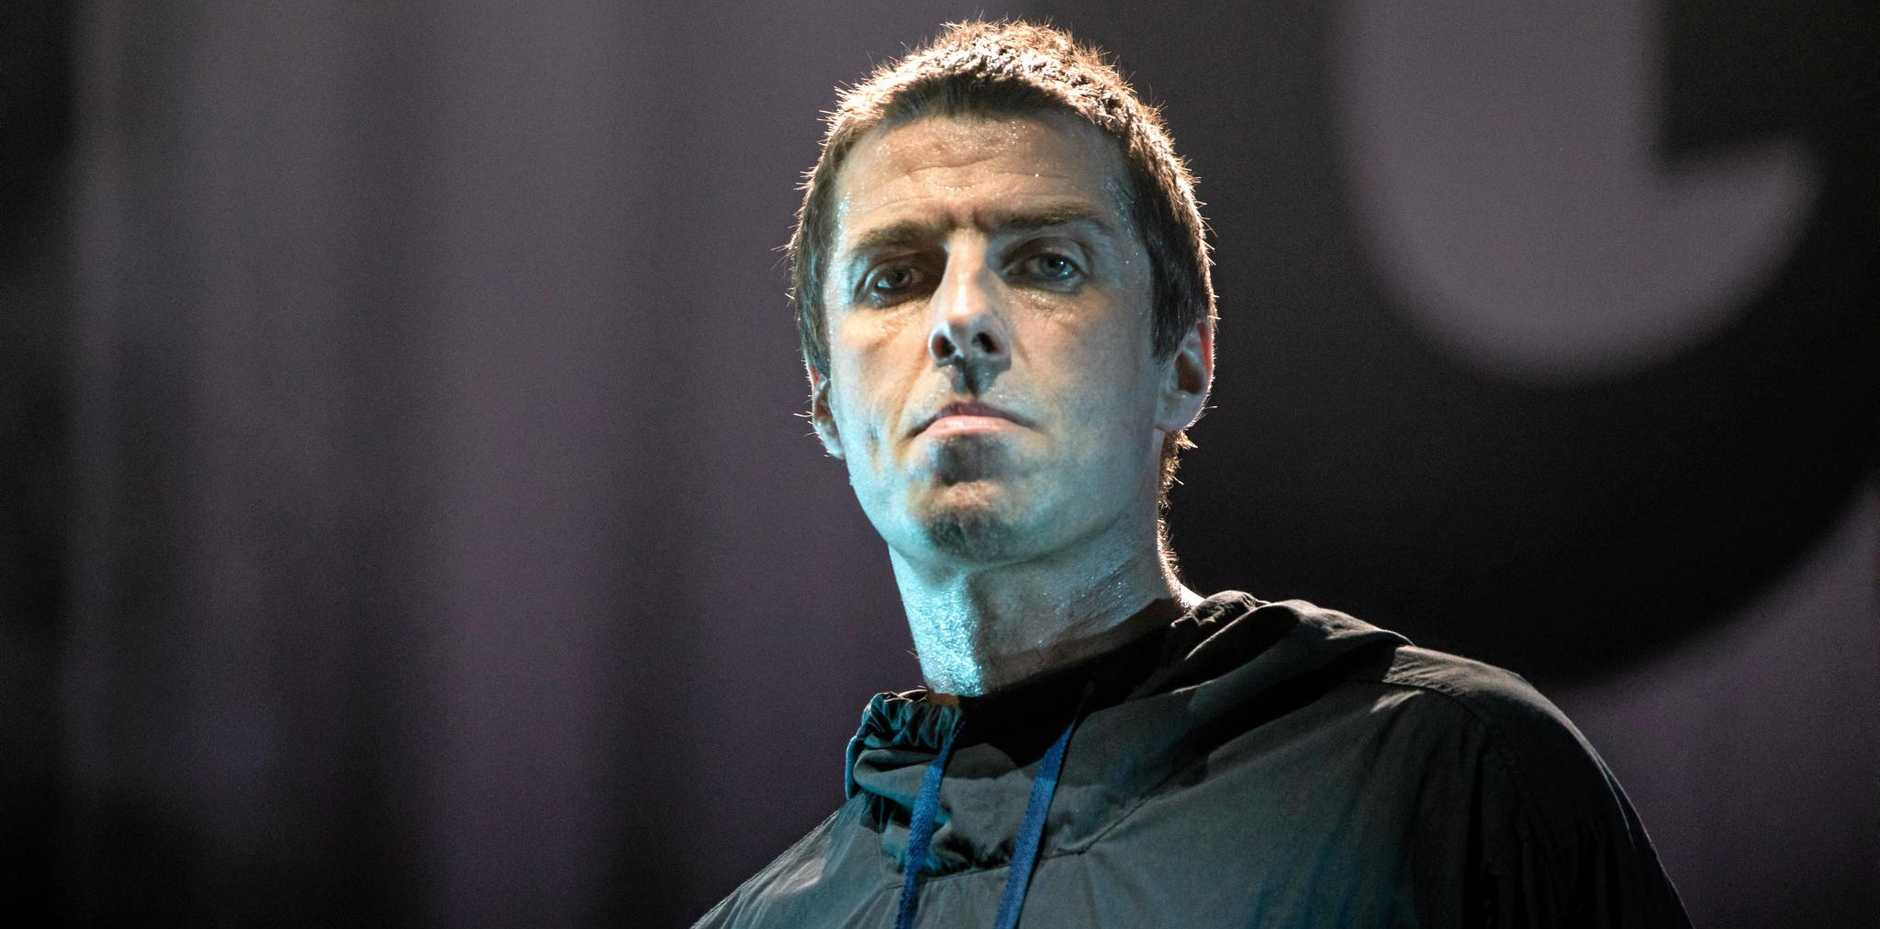 English musician, singer, and songwriter, former lead singer of the rock band Oasis, Liam Gallagher performs during his concert at National Olympic Sports Center in Beijing, China, 10 August 2017.